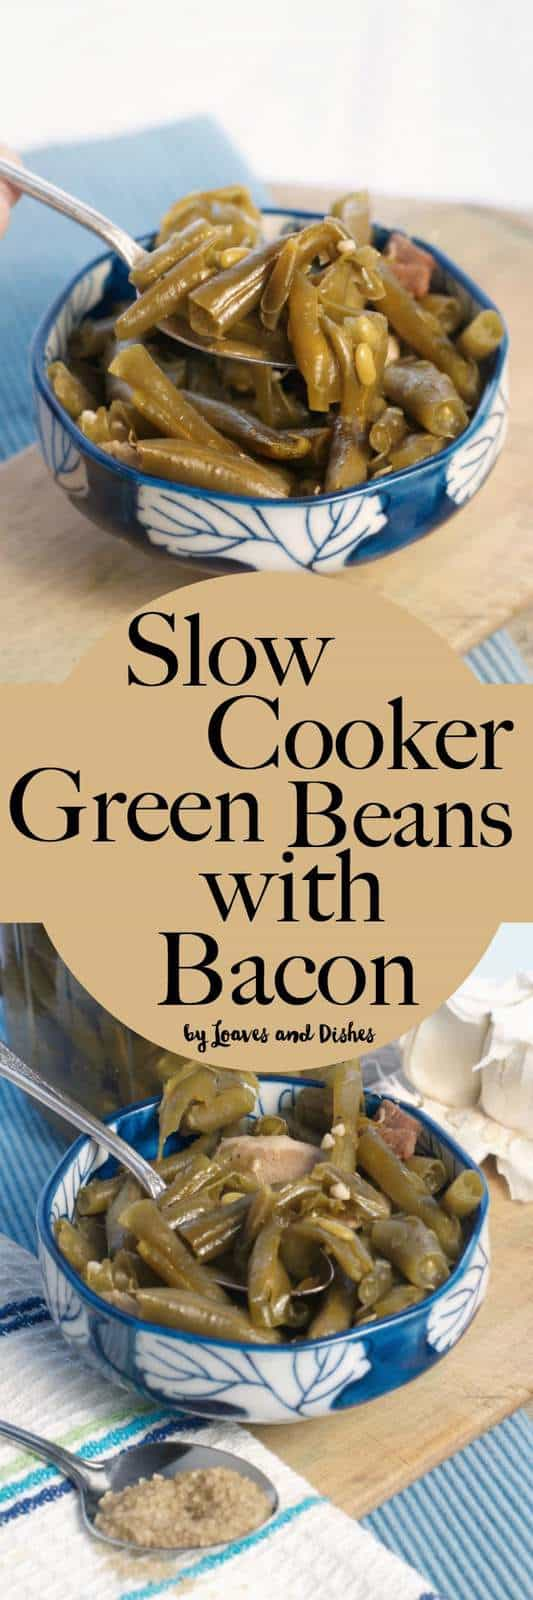 Simple recipe for smoky silky soft flavorful green beans that are just the best! Time saver and space saver in the kitchen. Use the crockpot and save time. Southern recipe great for families. Using canned, fresh or frozen beans.